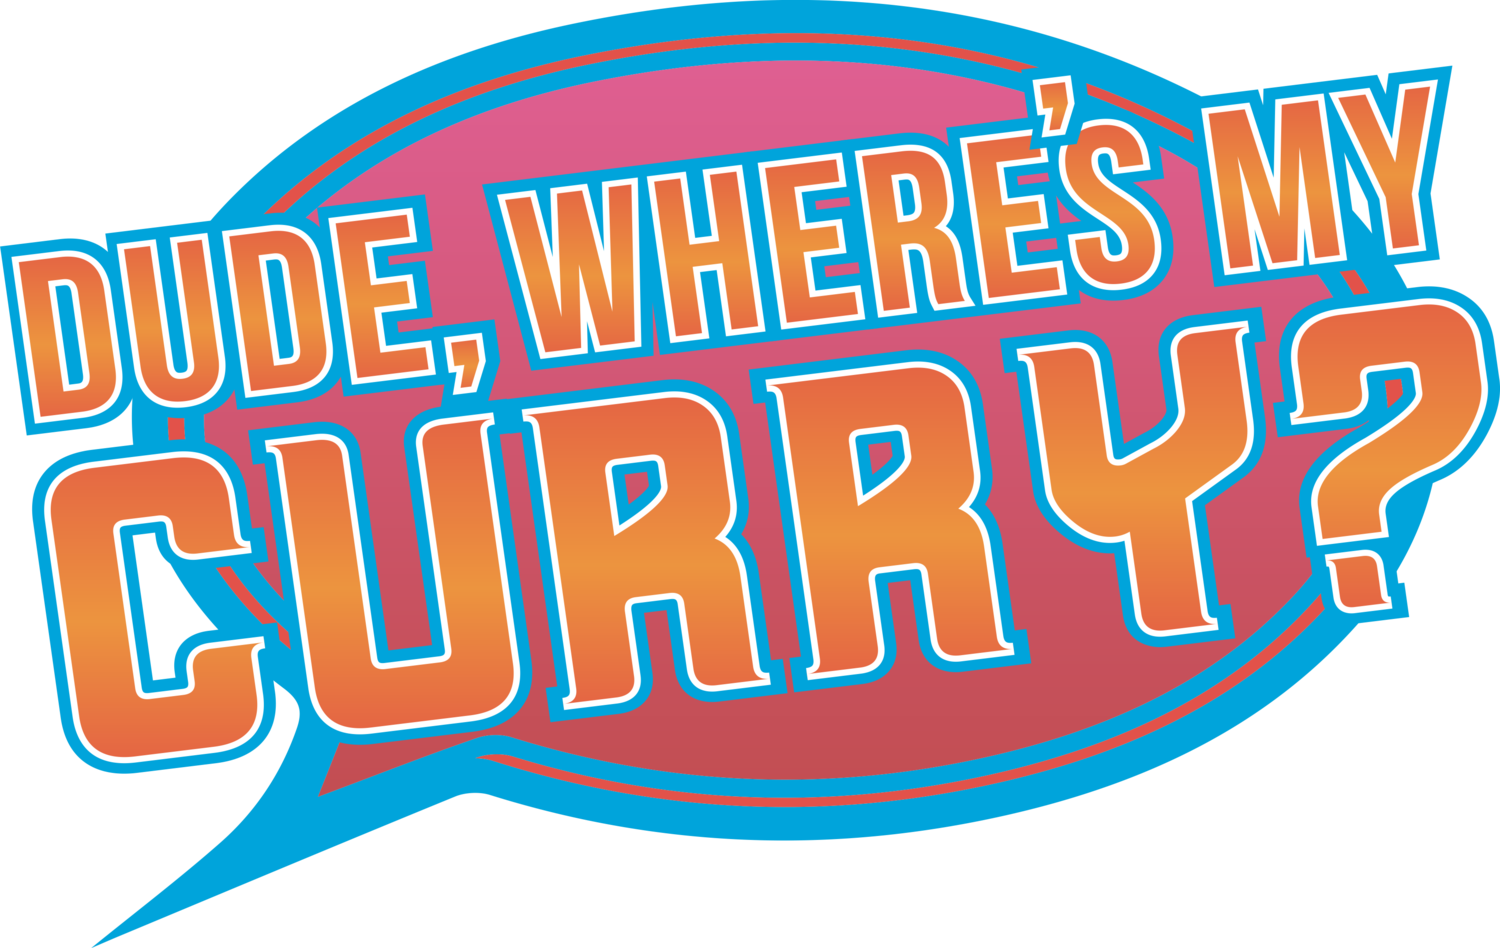 Dude, Where's My Curry?